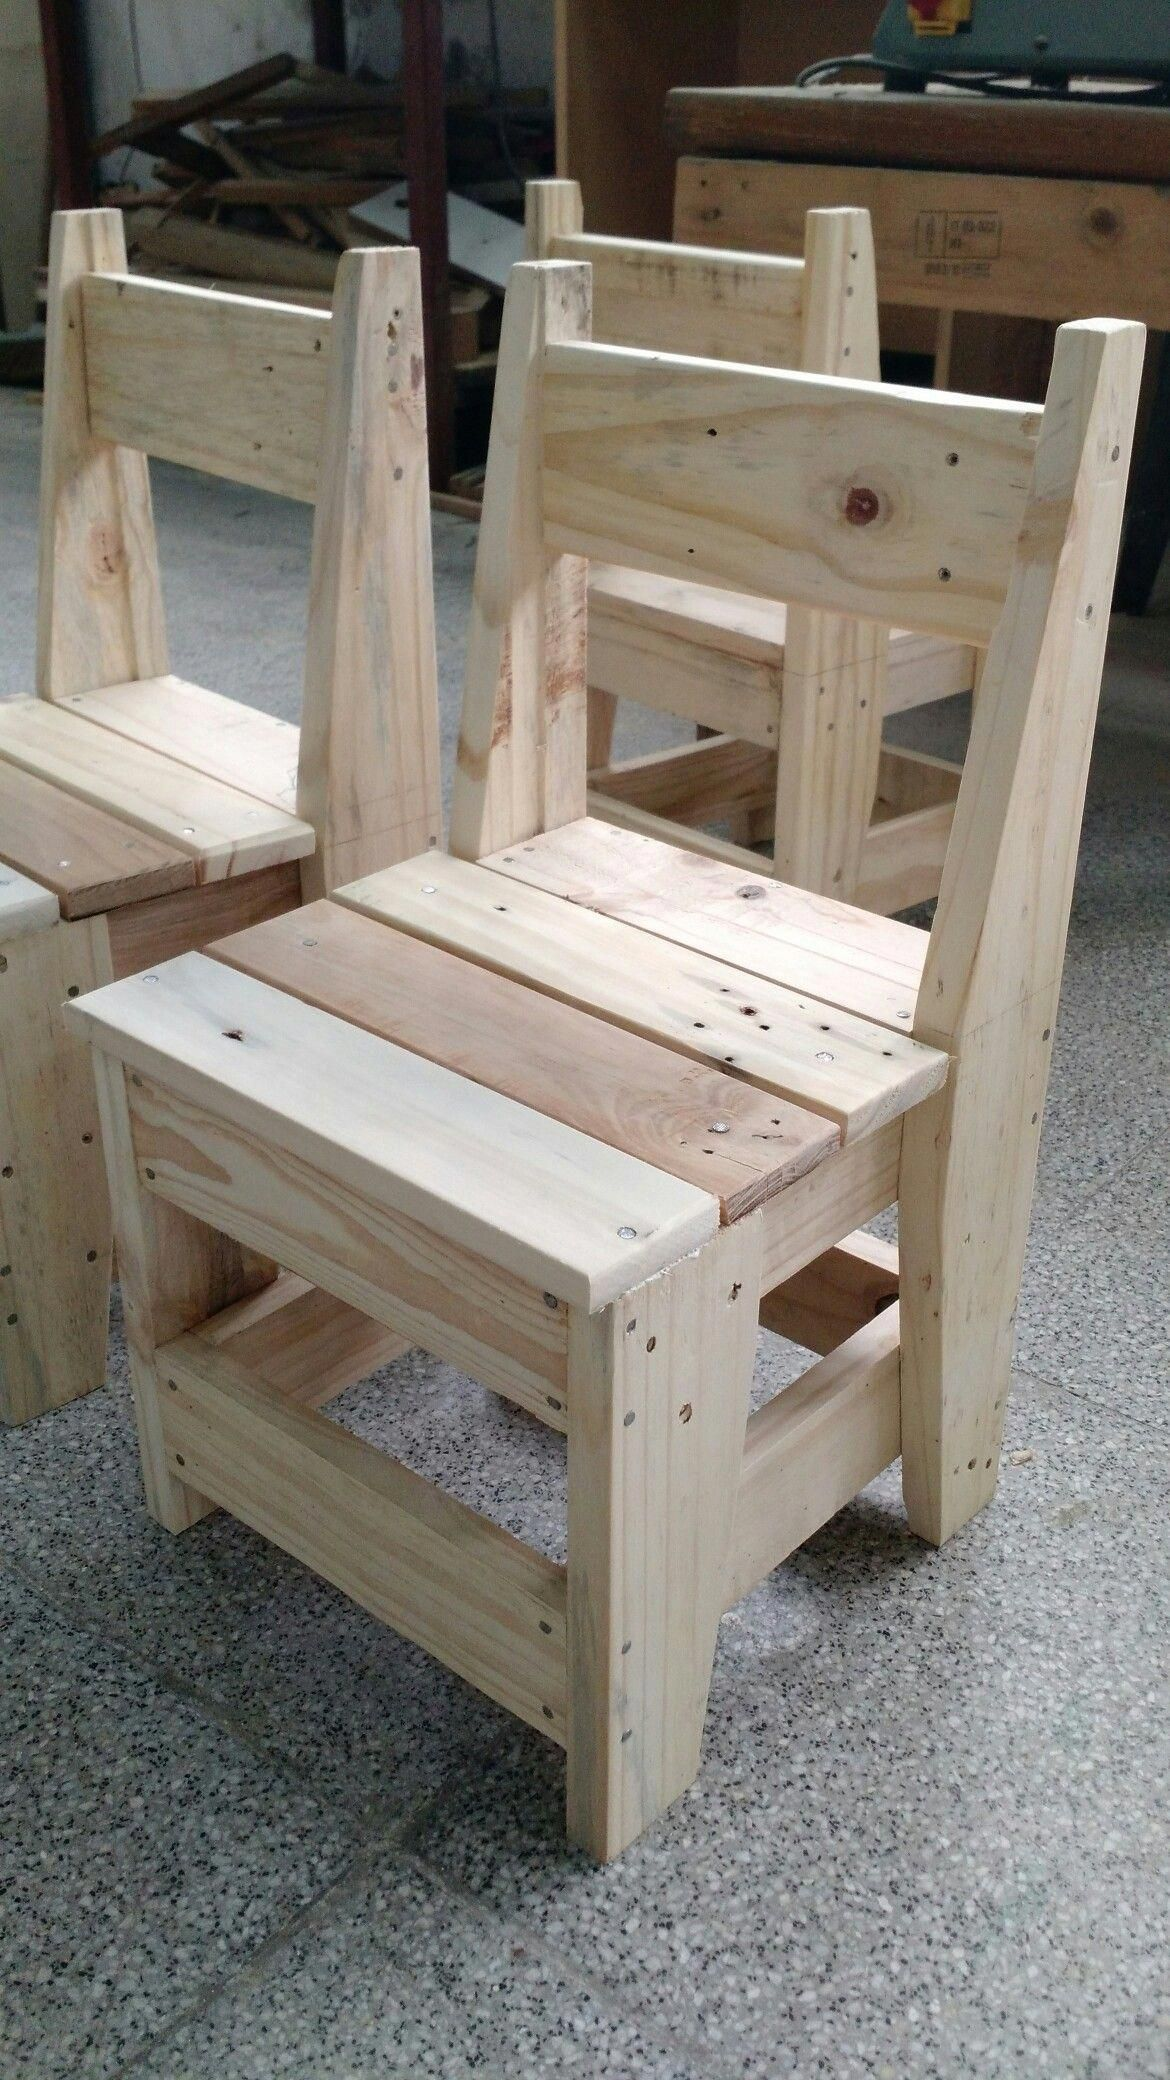 Express Useful Suggestions On Core Aspects Of Nice Wood Projects For